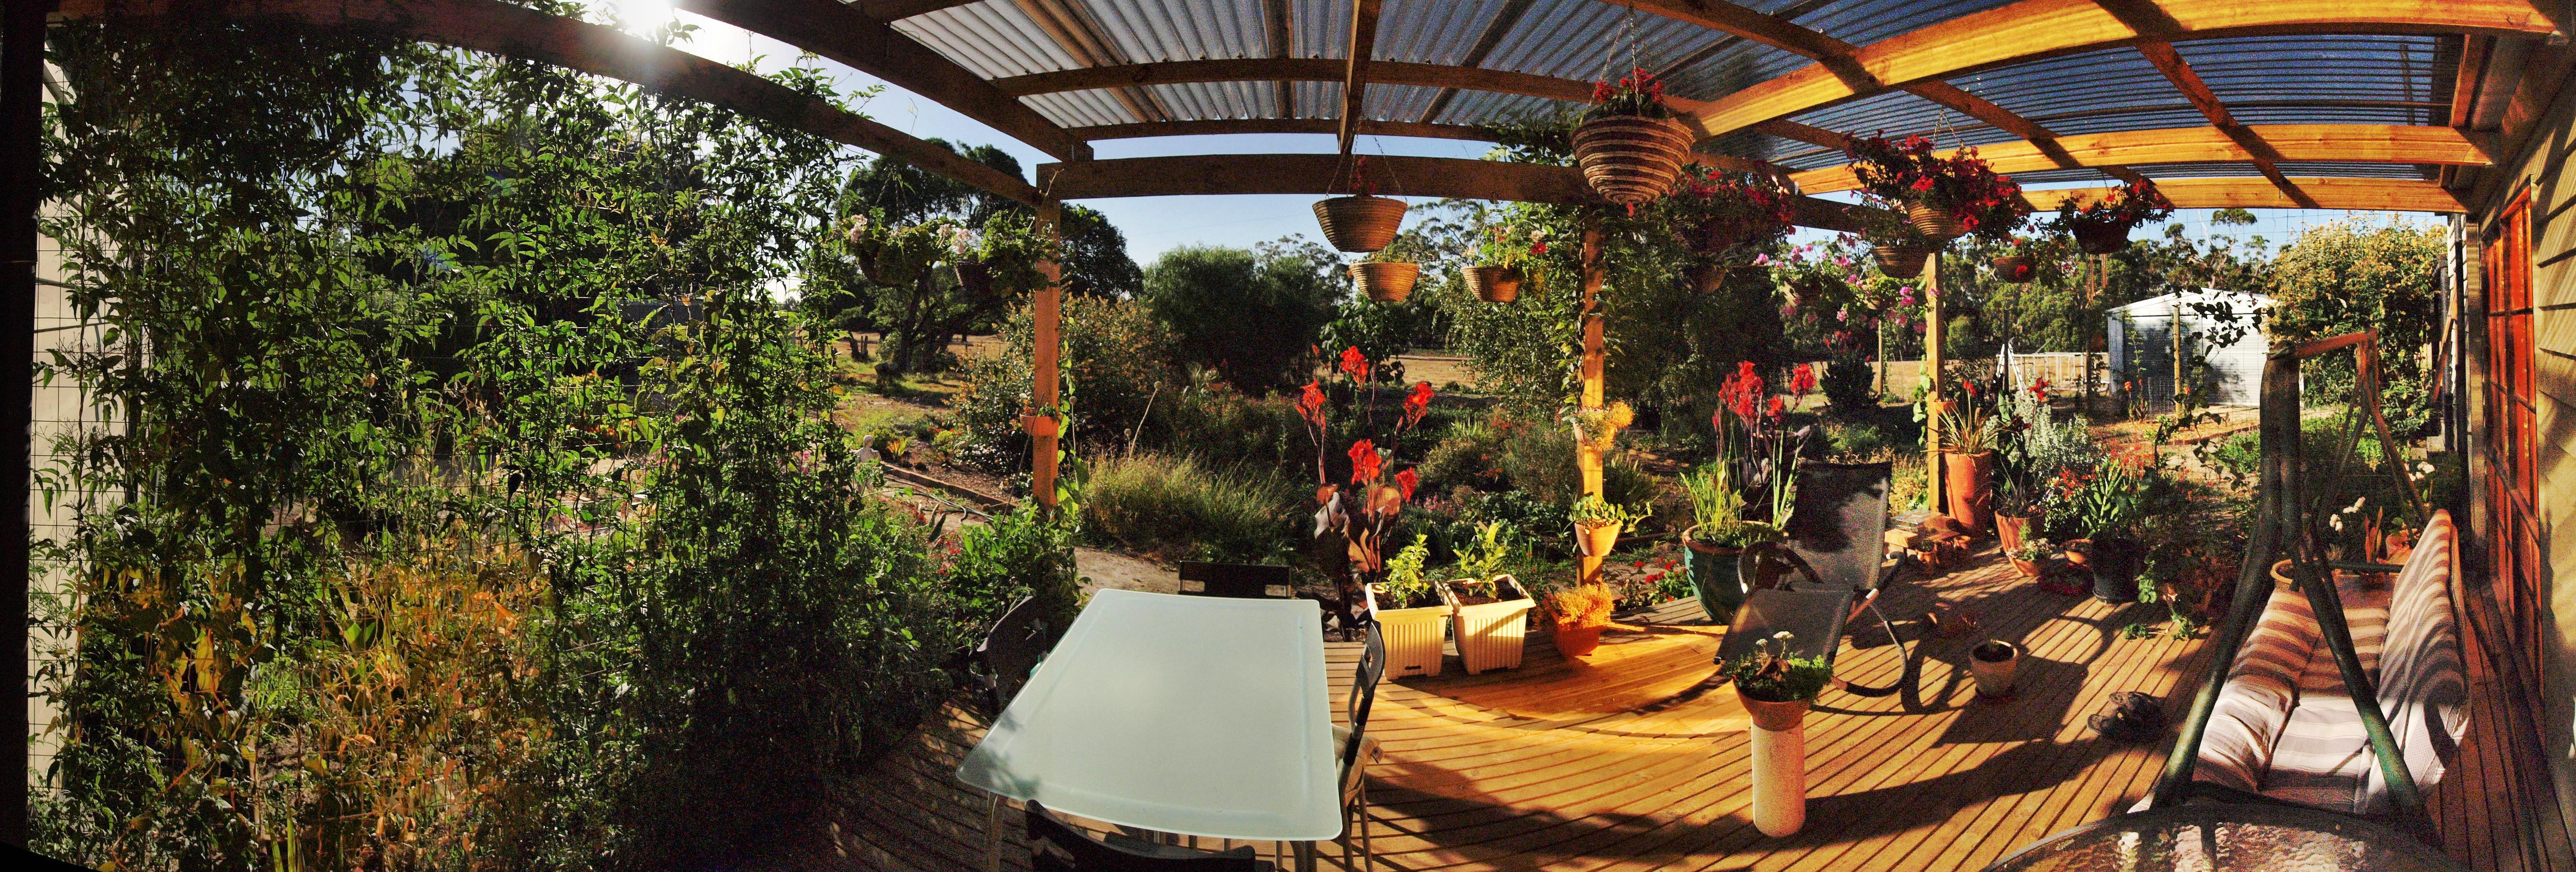 Blue-moon-verandah-panorama.jpeg